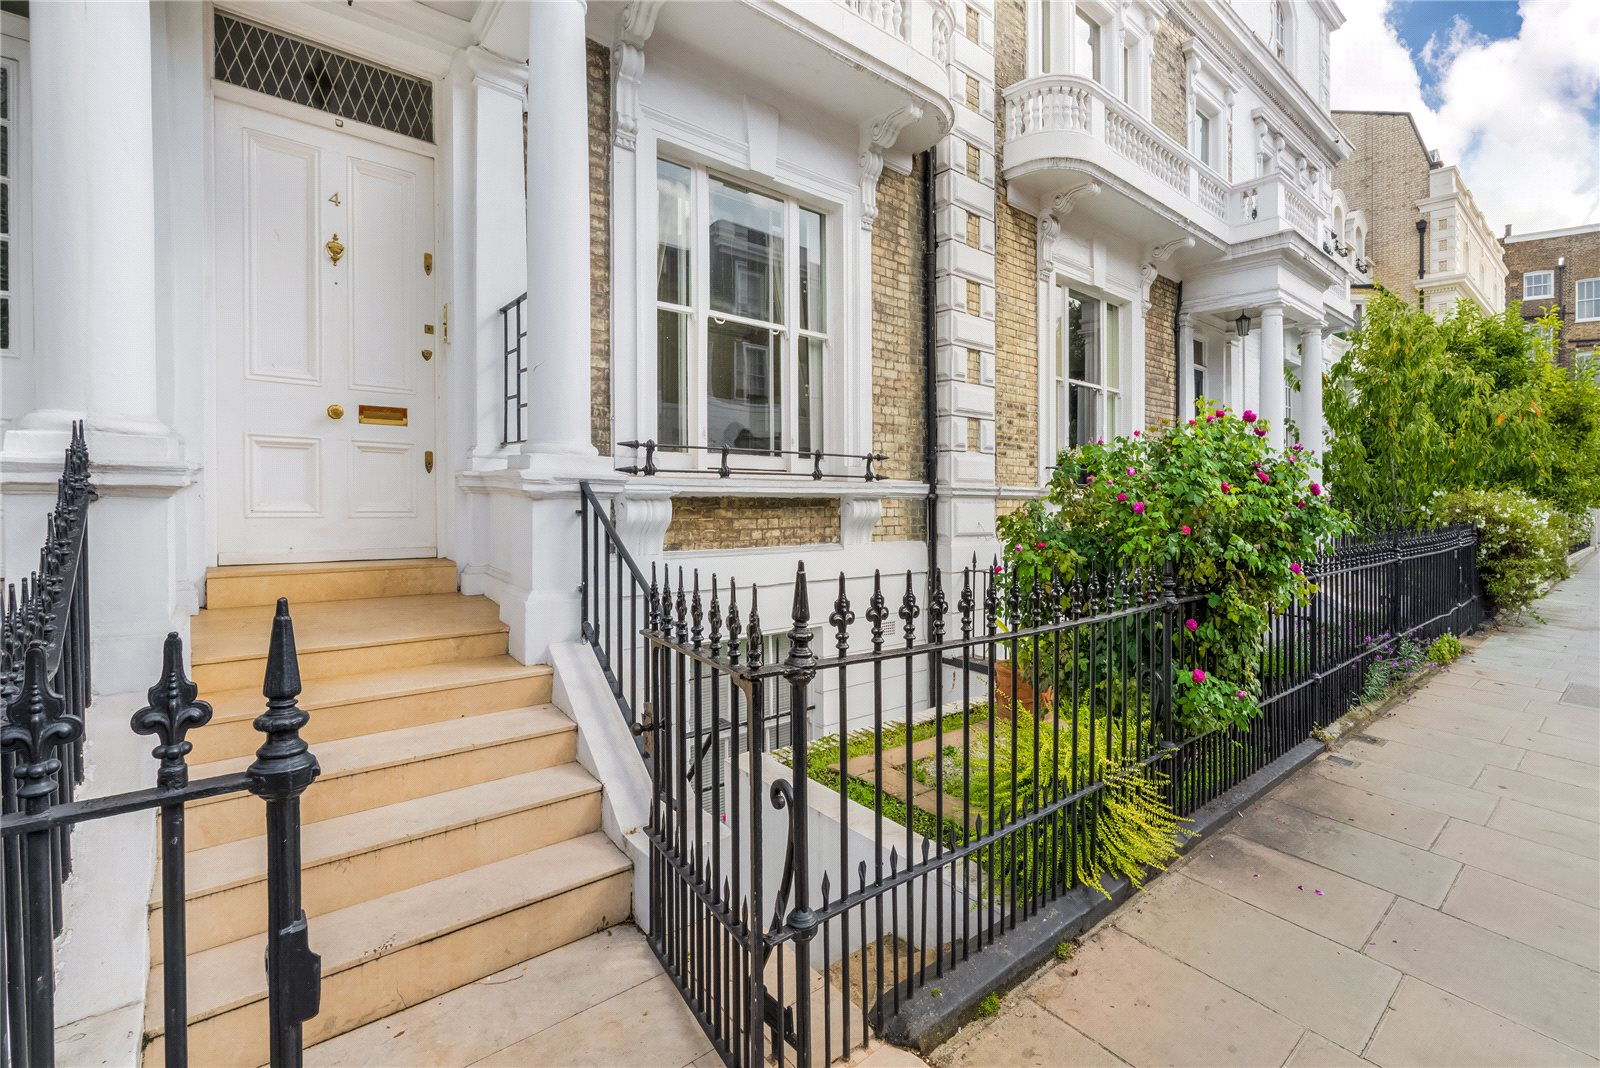 Additional photo for property listing at Neville Terrace, South Kensington, London, SW7 South Kensington, London, Англия